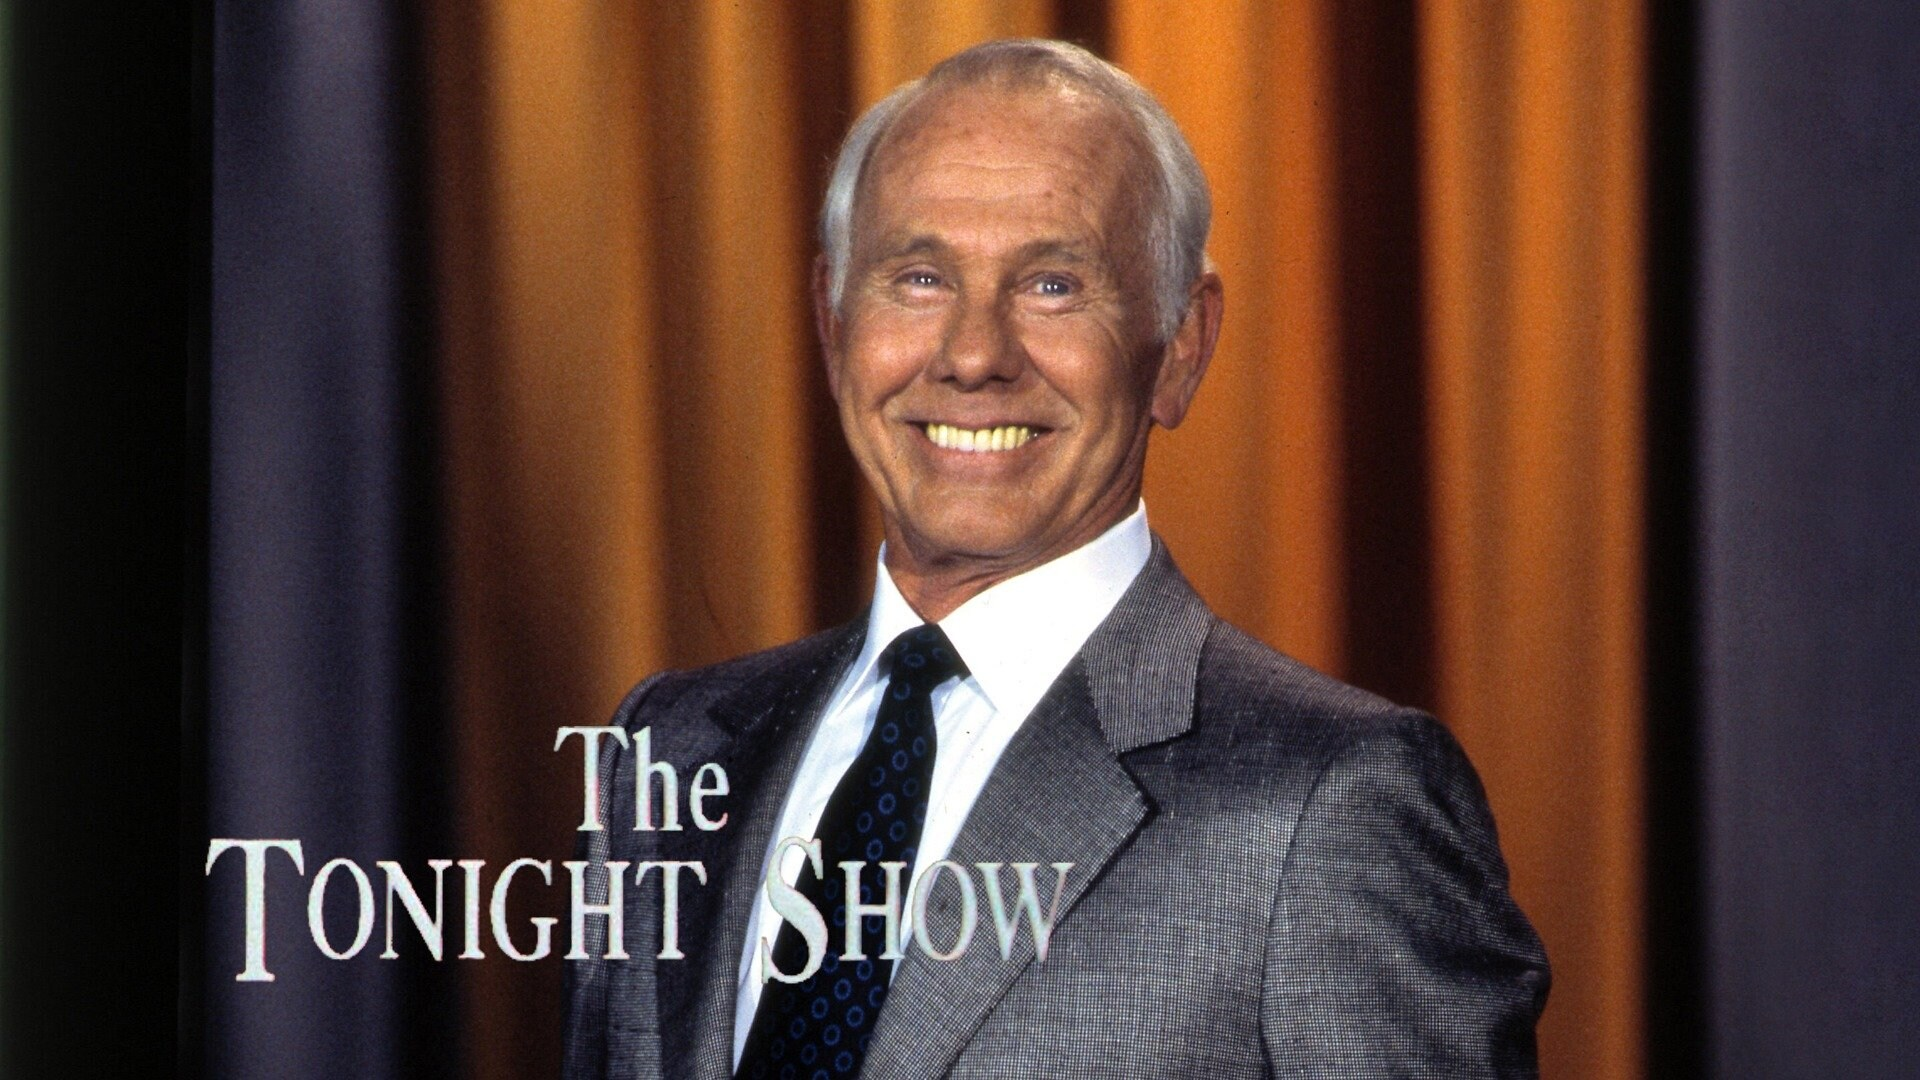 The Johnny Carson Show: Comic Legends Of The '80s - Chevy Chase (7/22/83)